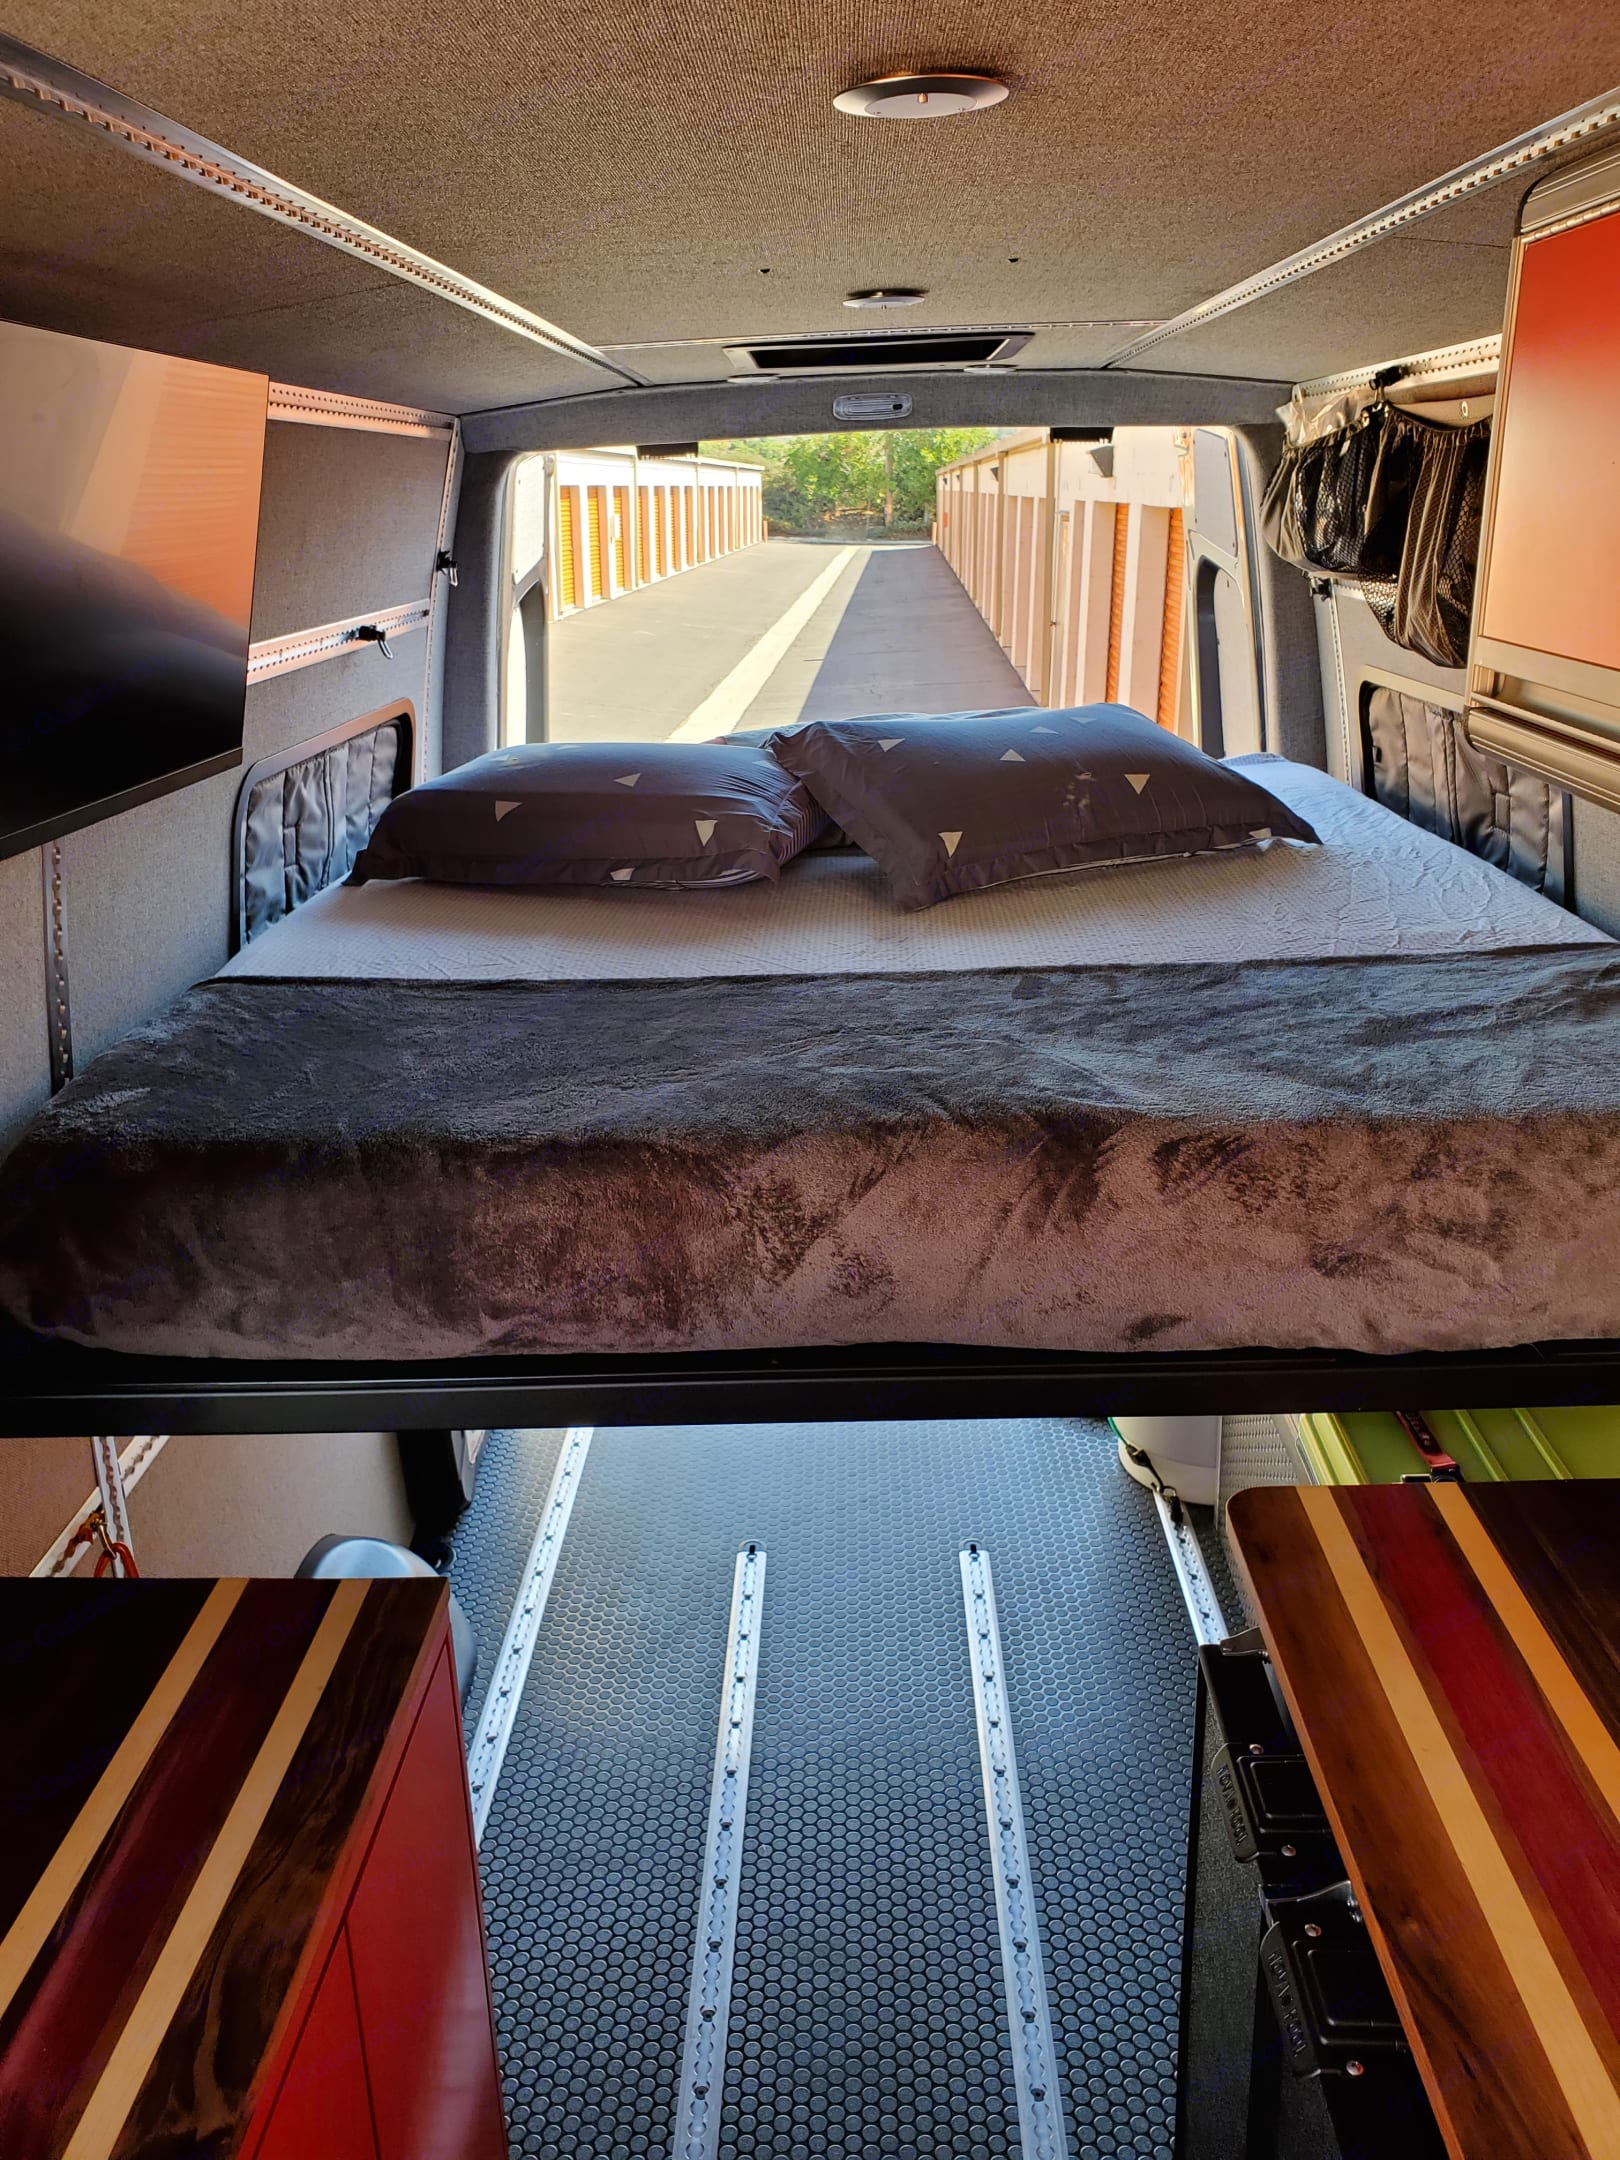 Great place to rest your head after a day spent adventuring!. Mercedes-Benz Sprinter 2019